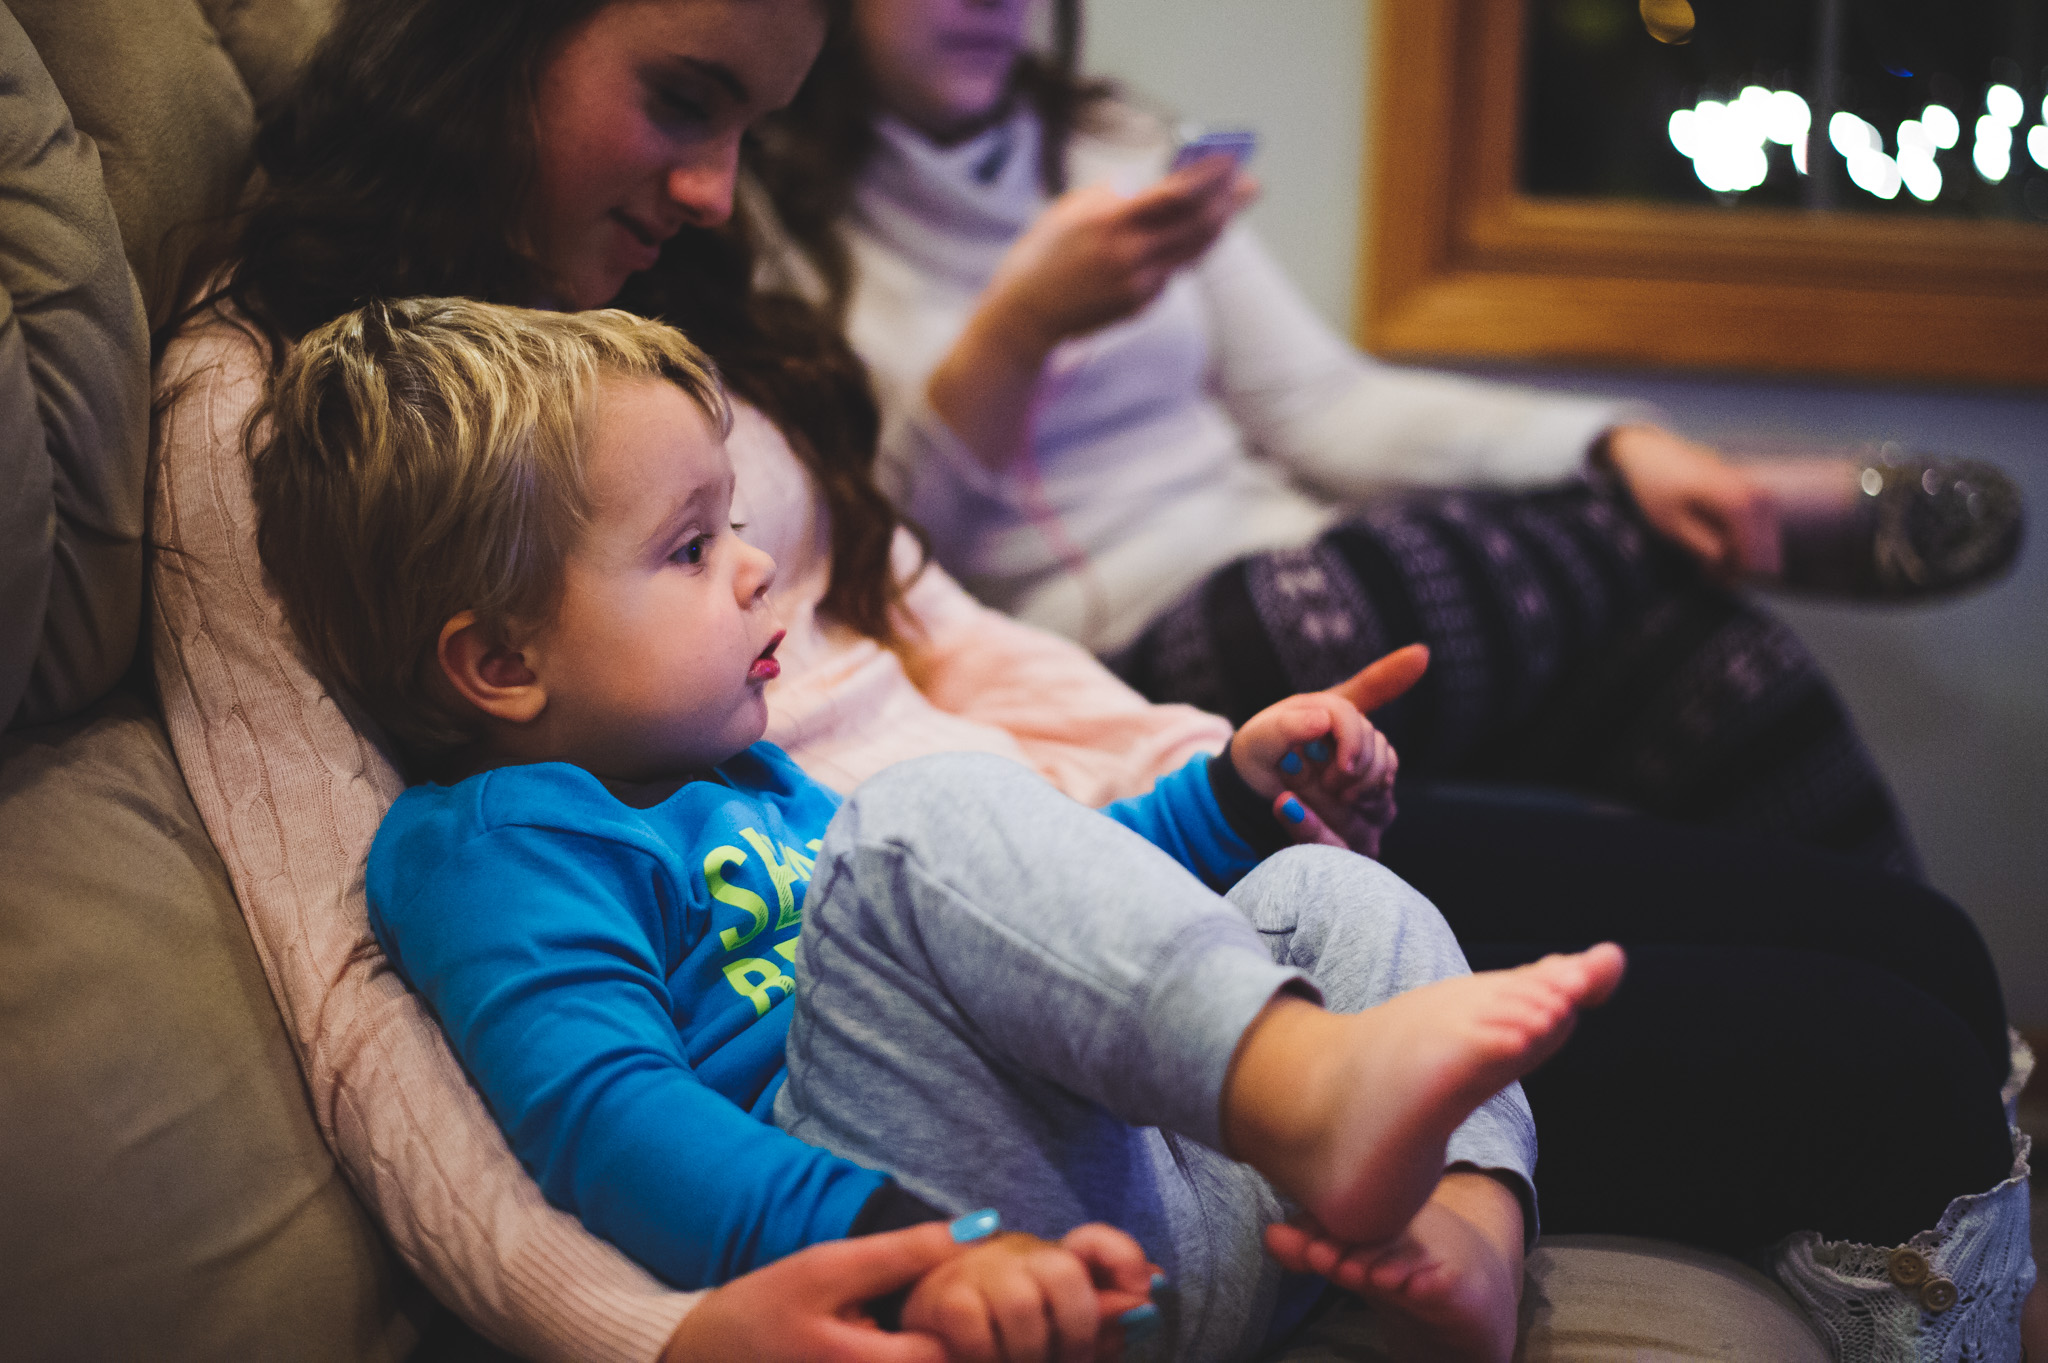 31 Dec 2016 | We spent New Years Eve with my extended family in central Illinois, and Leo latched on to my cousin's daughter. Here, they're watching Dick Clark's New Year's Rockin' Eve.